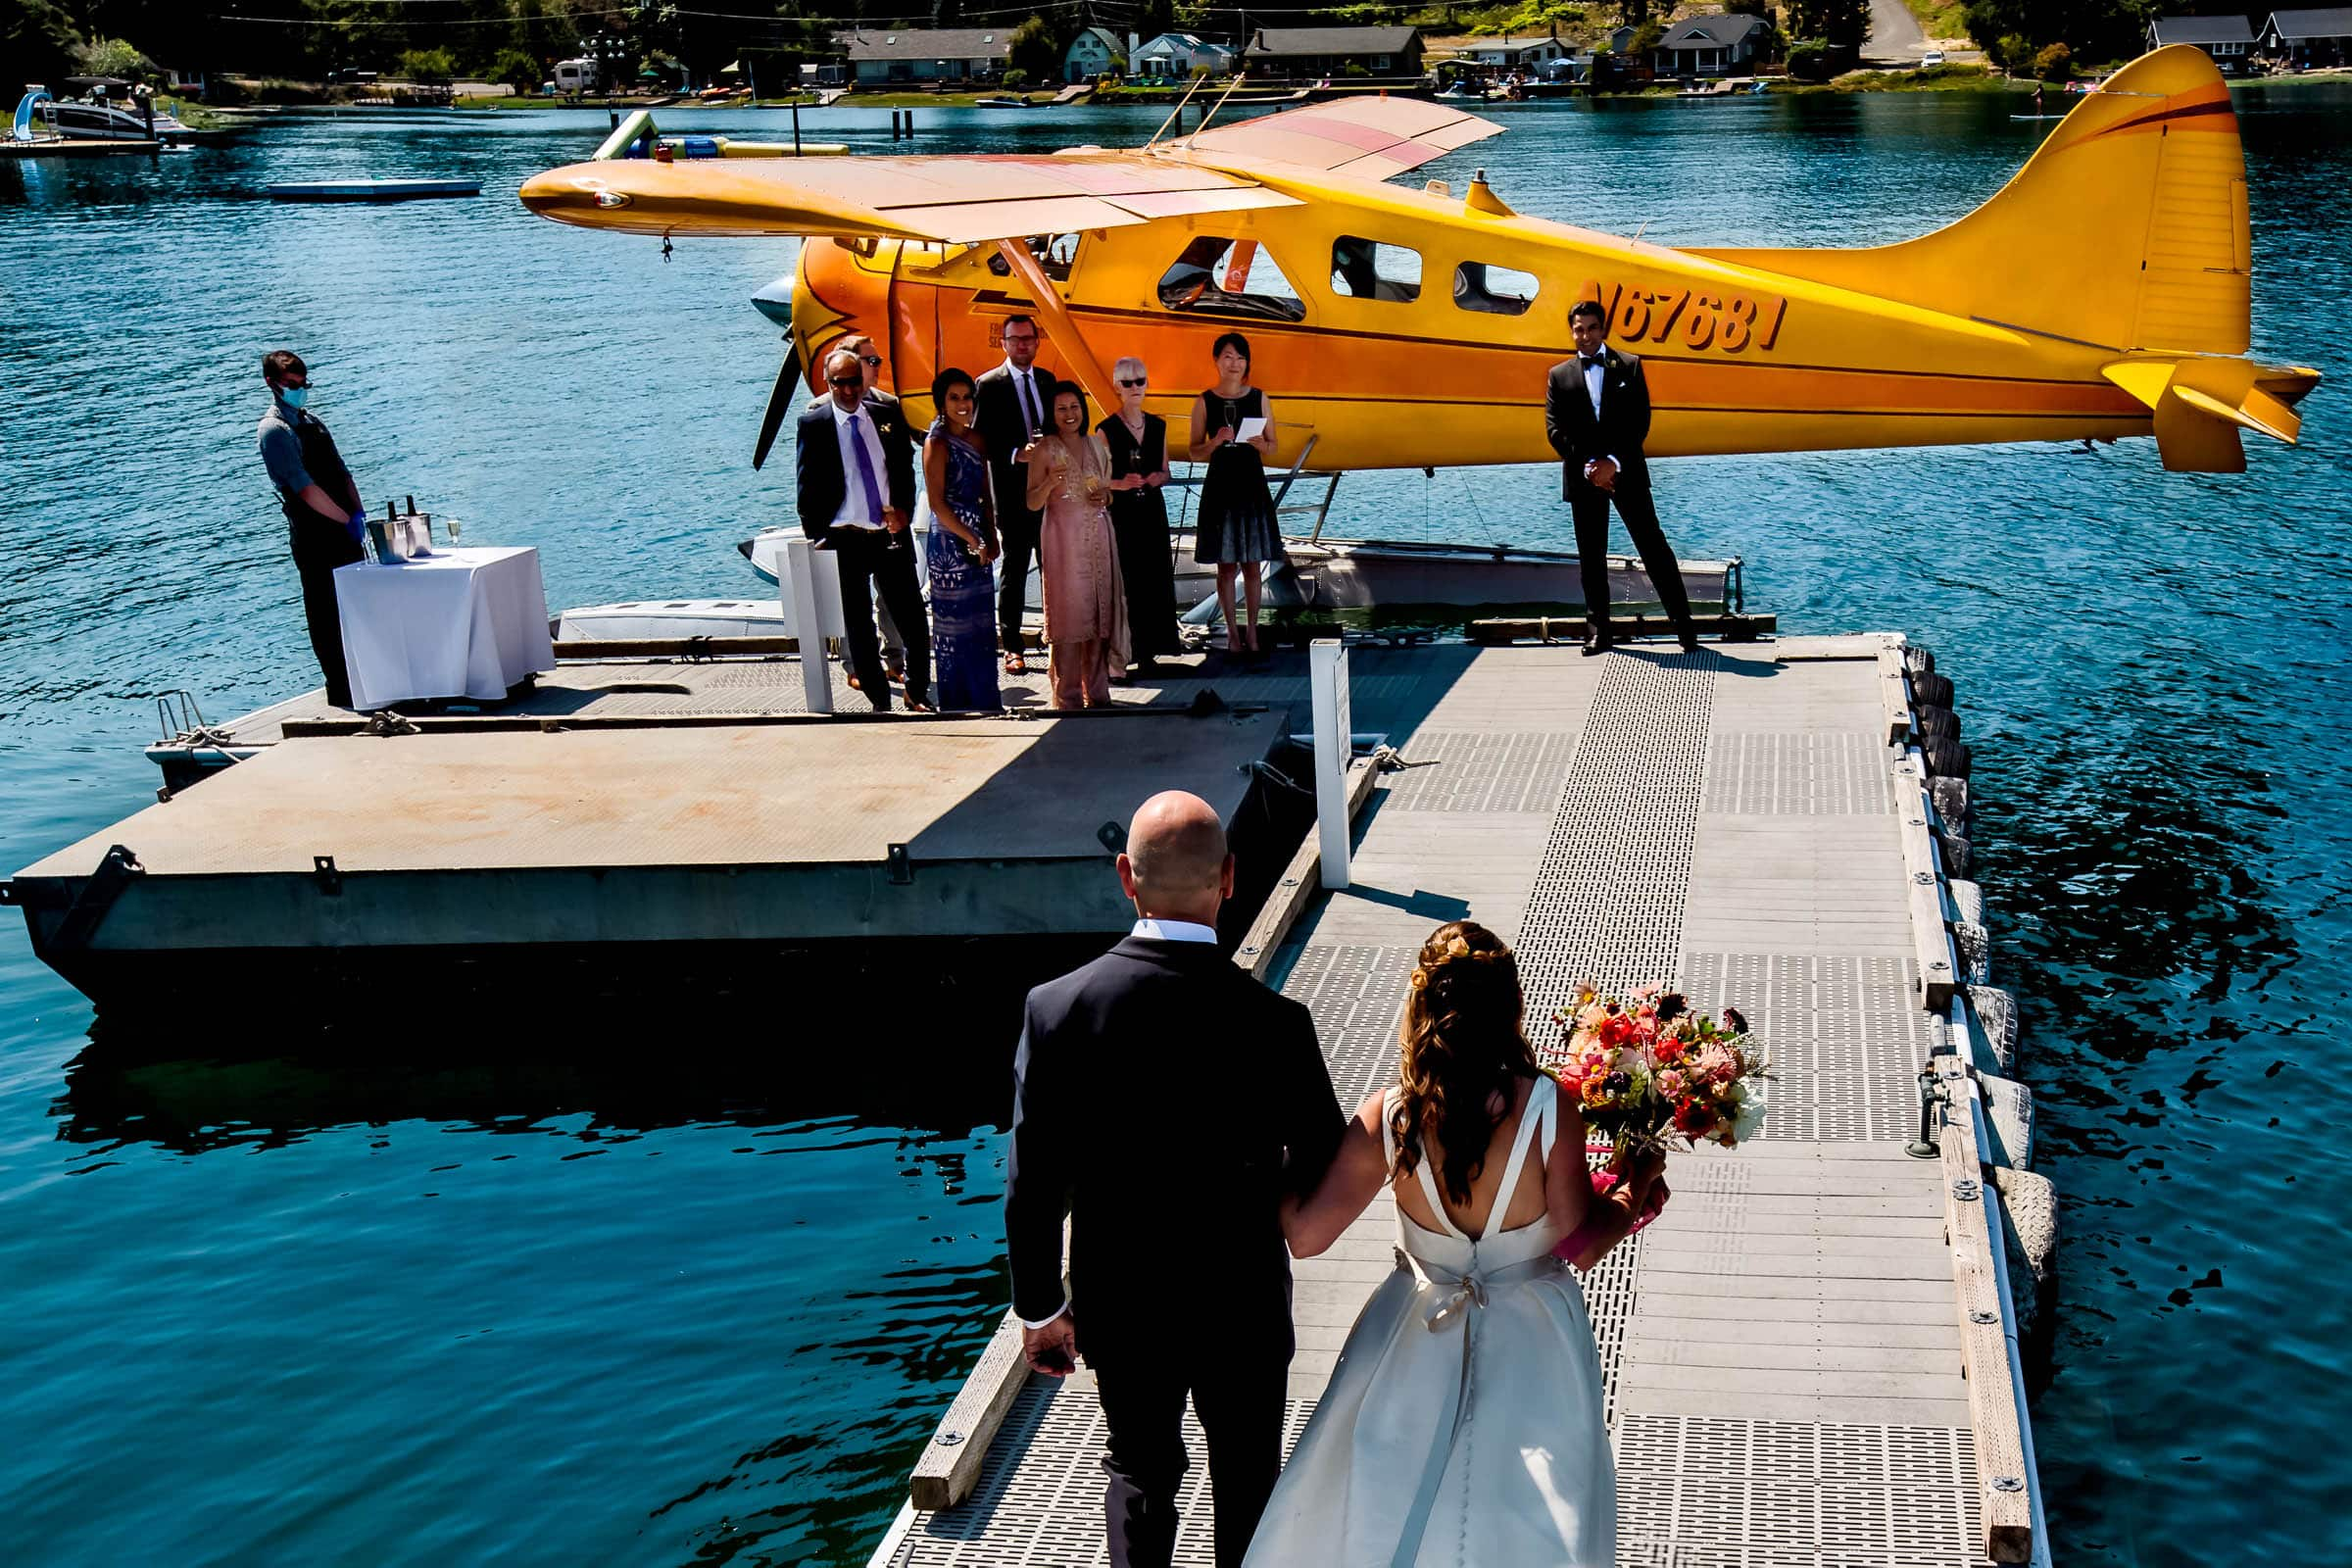 Bride and groom walking down a dock for an Alderbrook Elopement to a seaplane headed to Hope Island.